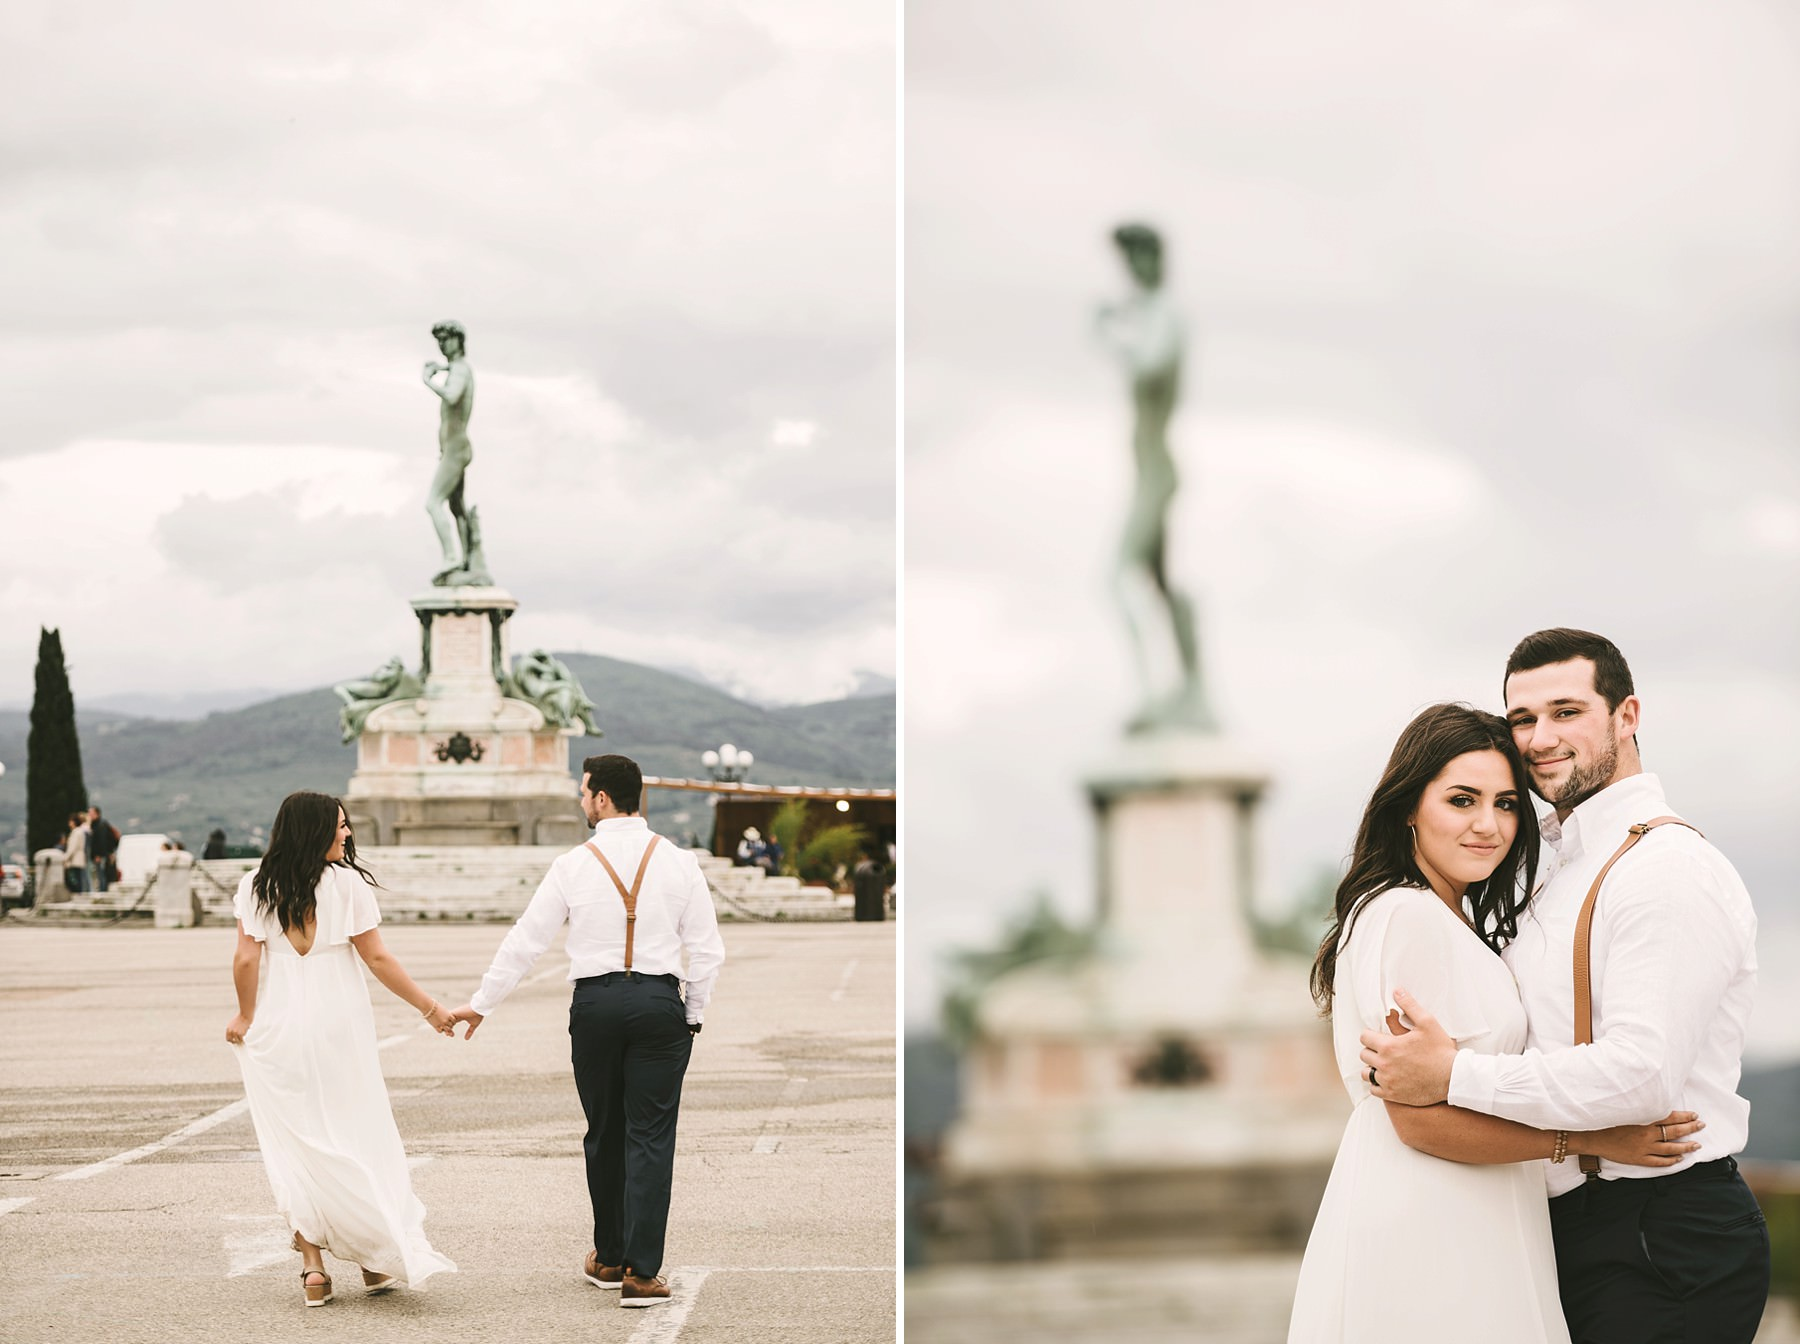 Elegant and romantic elopement wedding photo session at Piazzale Michelangelo in Florence